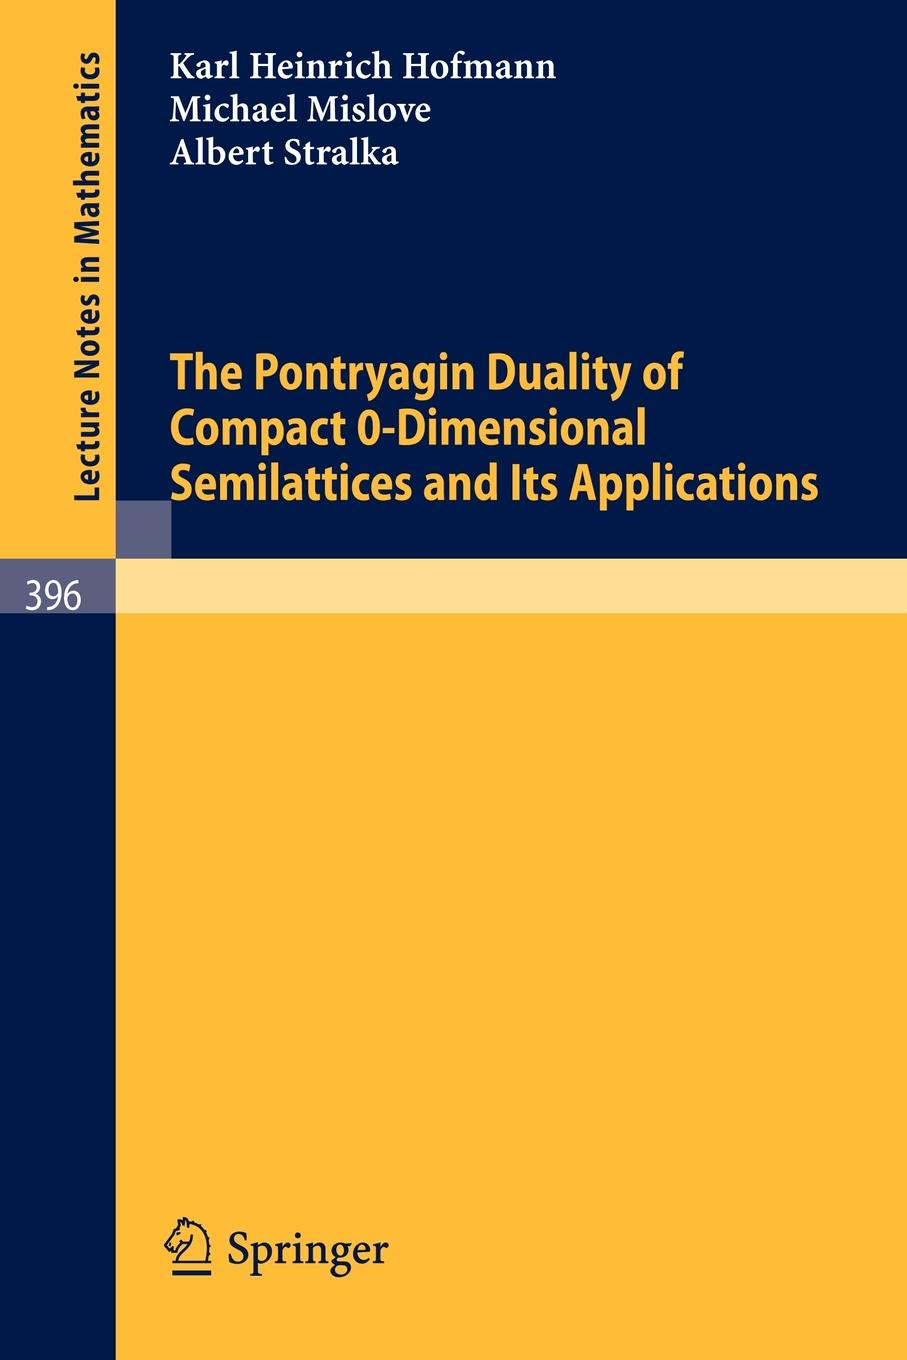 K.H. Hofmann, M. Mislove, A. Stralka The Pontryagin Duality of Compact O-Dimensional Semilattices and Its Applications